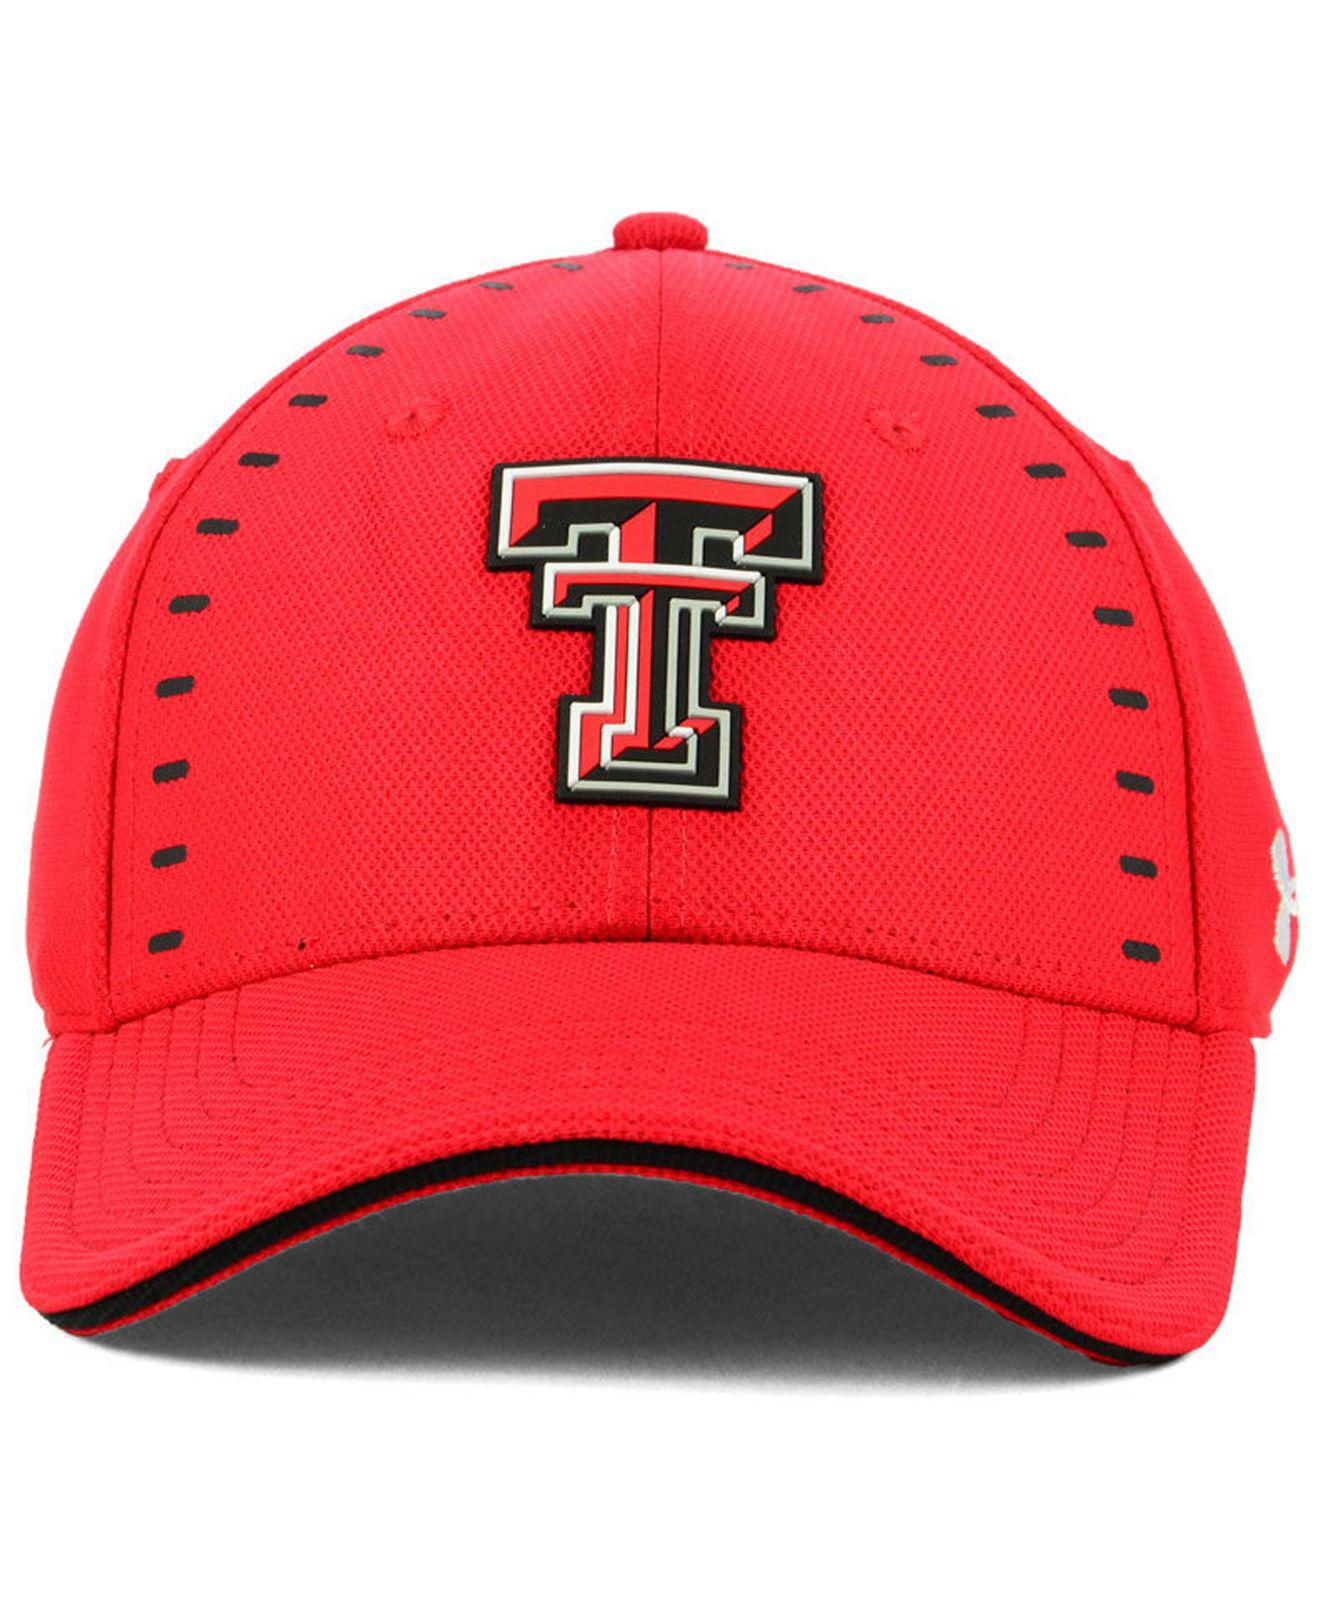 86817e0edfb ... discount code for lyst under armour texas tech red raiders blitzing flex  stretch fitted cap in ...